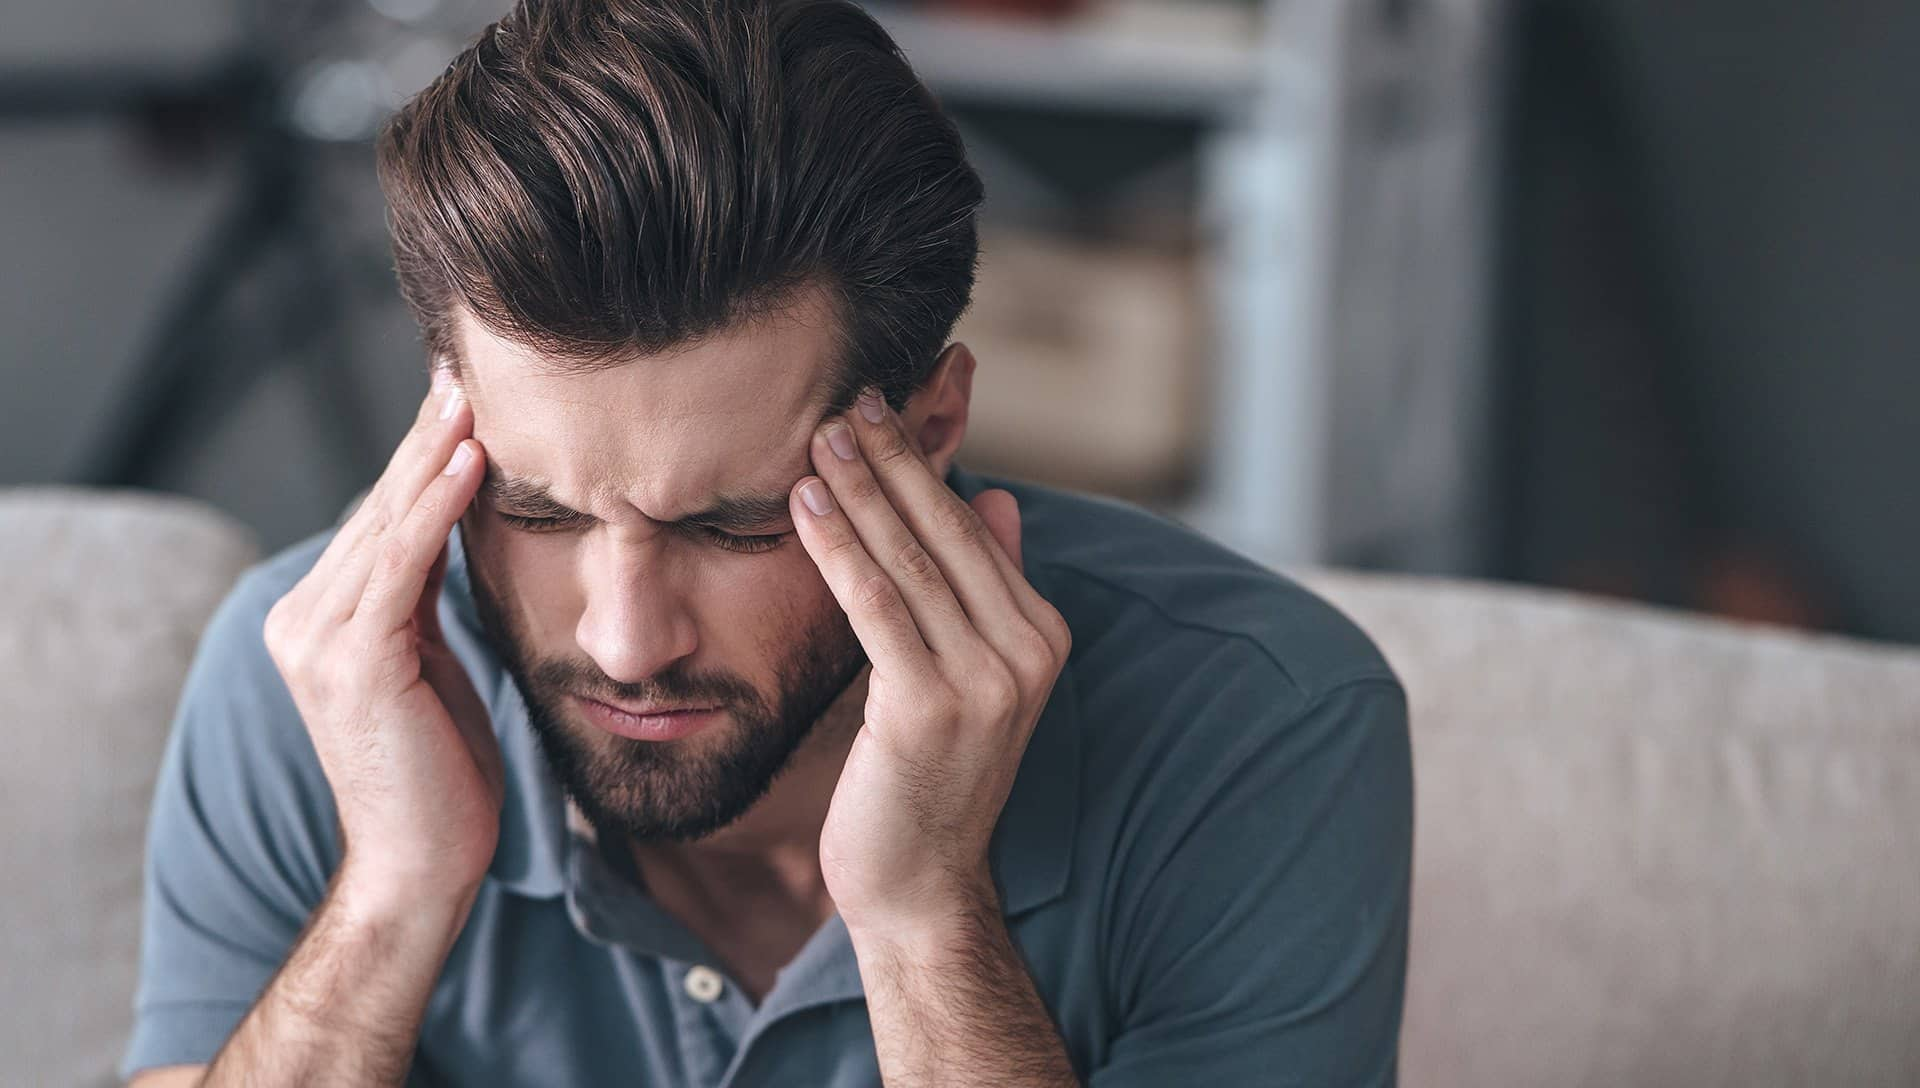 Headaches and Migraines: Get to the Root Causes and Learn How to Avoid NSAIDs with Truth Calkins